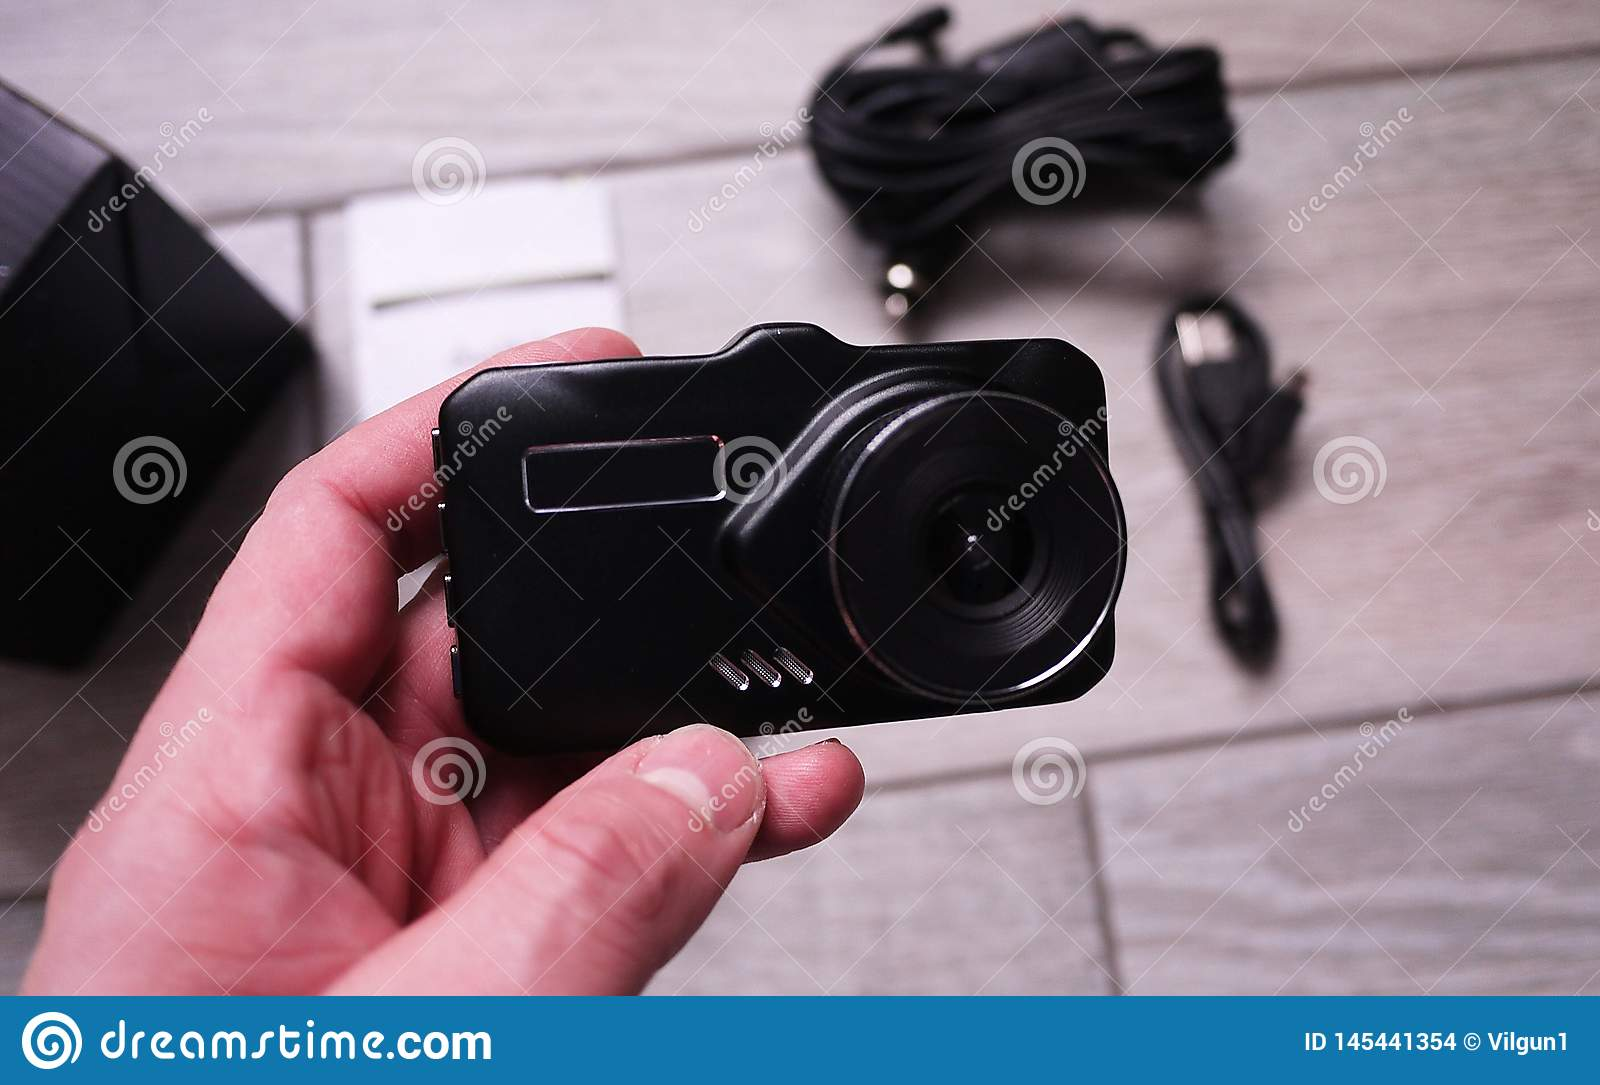 Video recorder to record the traffic situation while driving your car. It can be used both in cars and trucks.